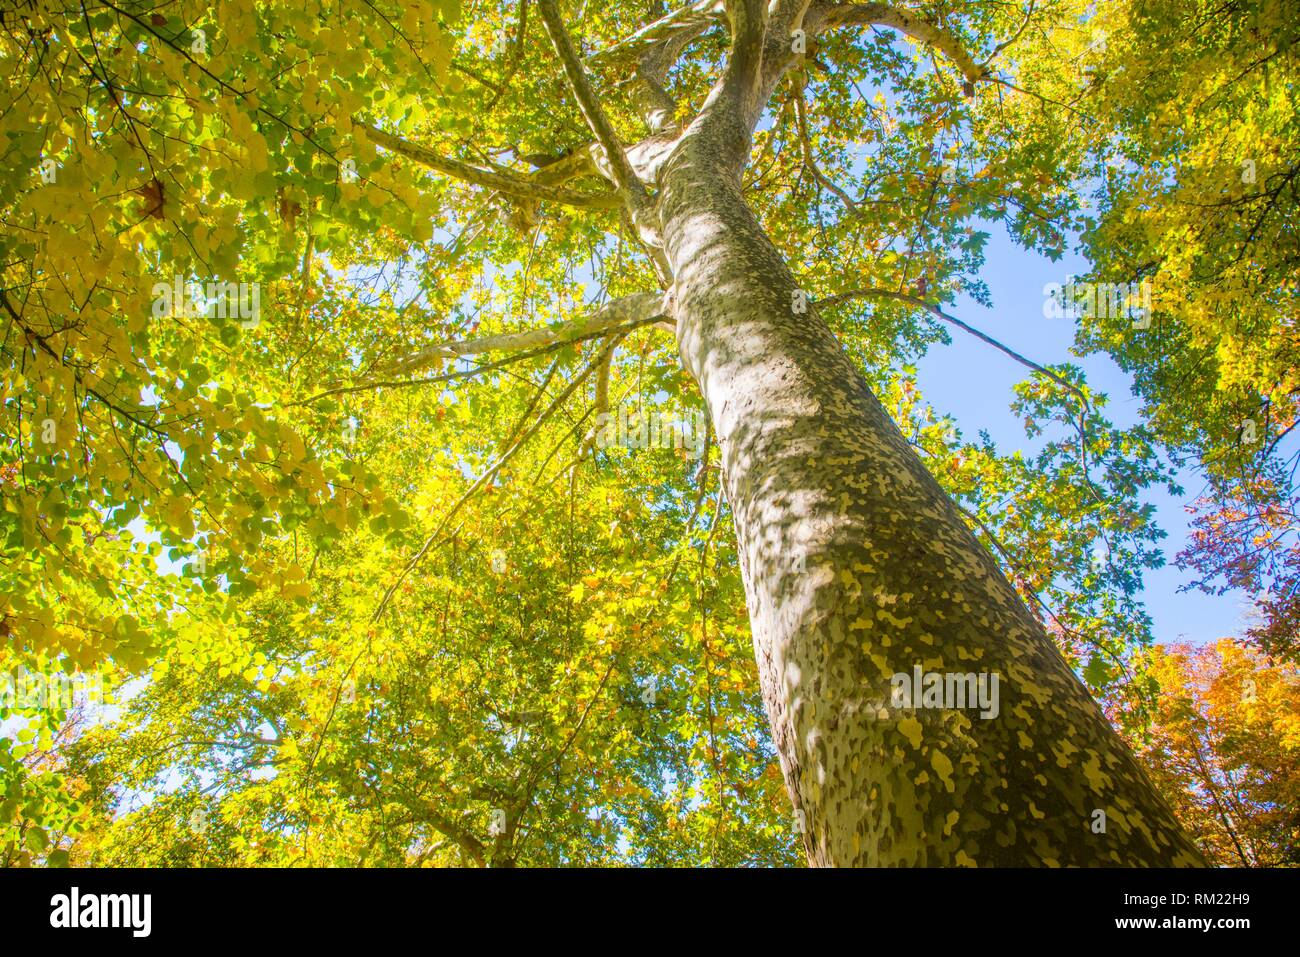 Deciduous tree in Autumn, view from below. - Stock Image